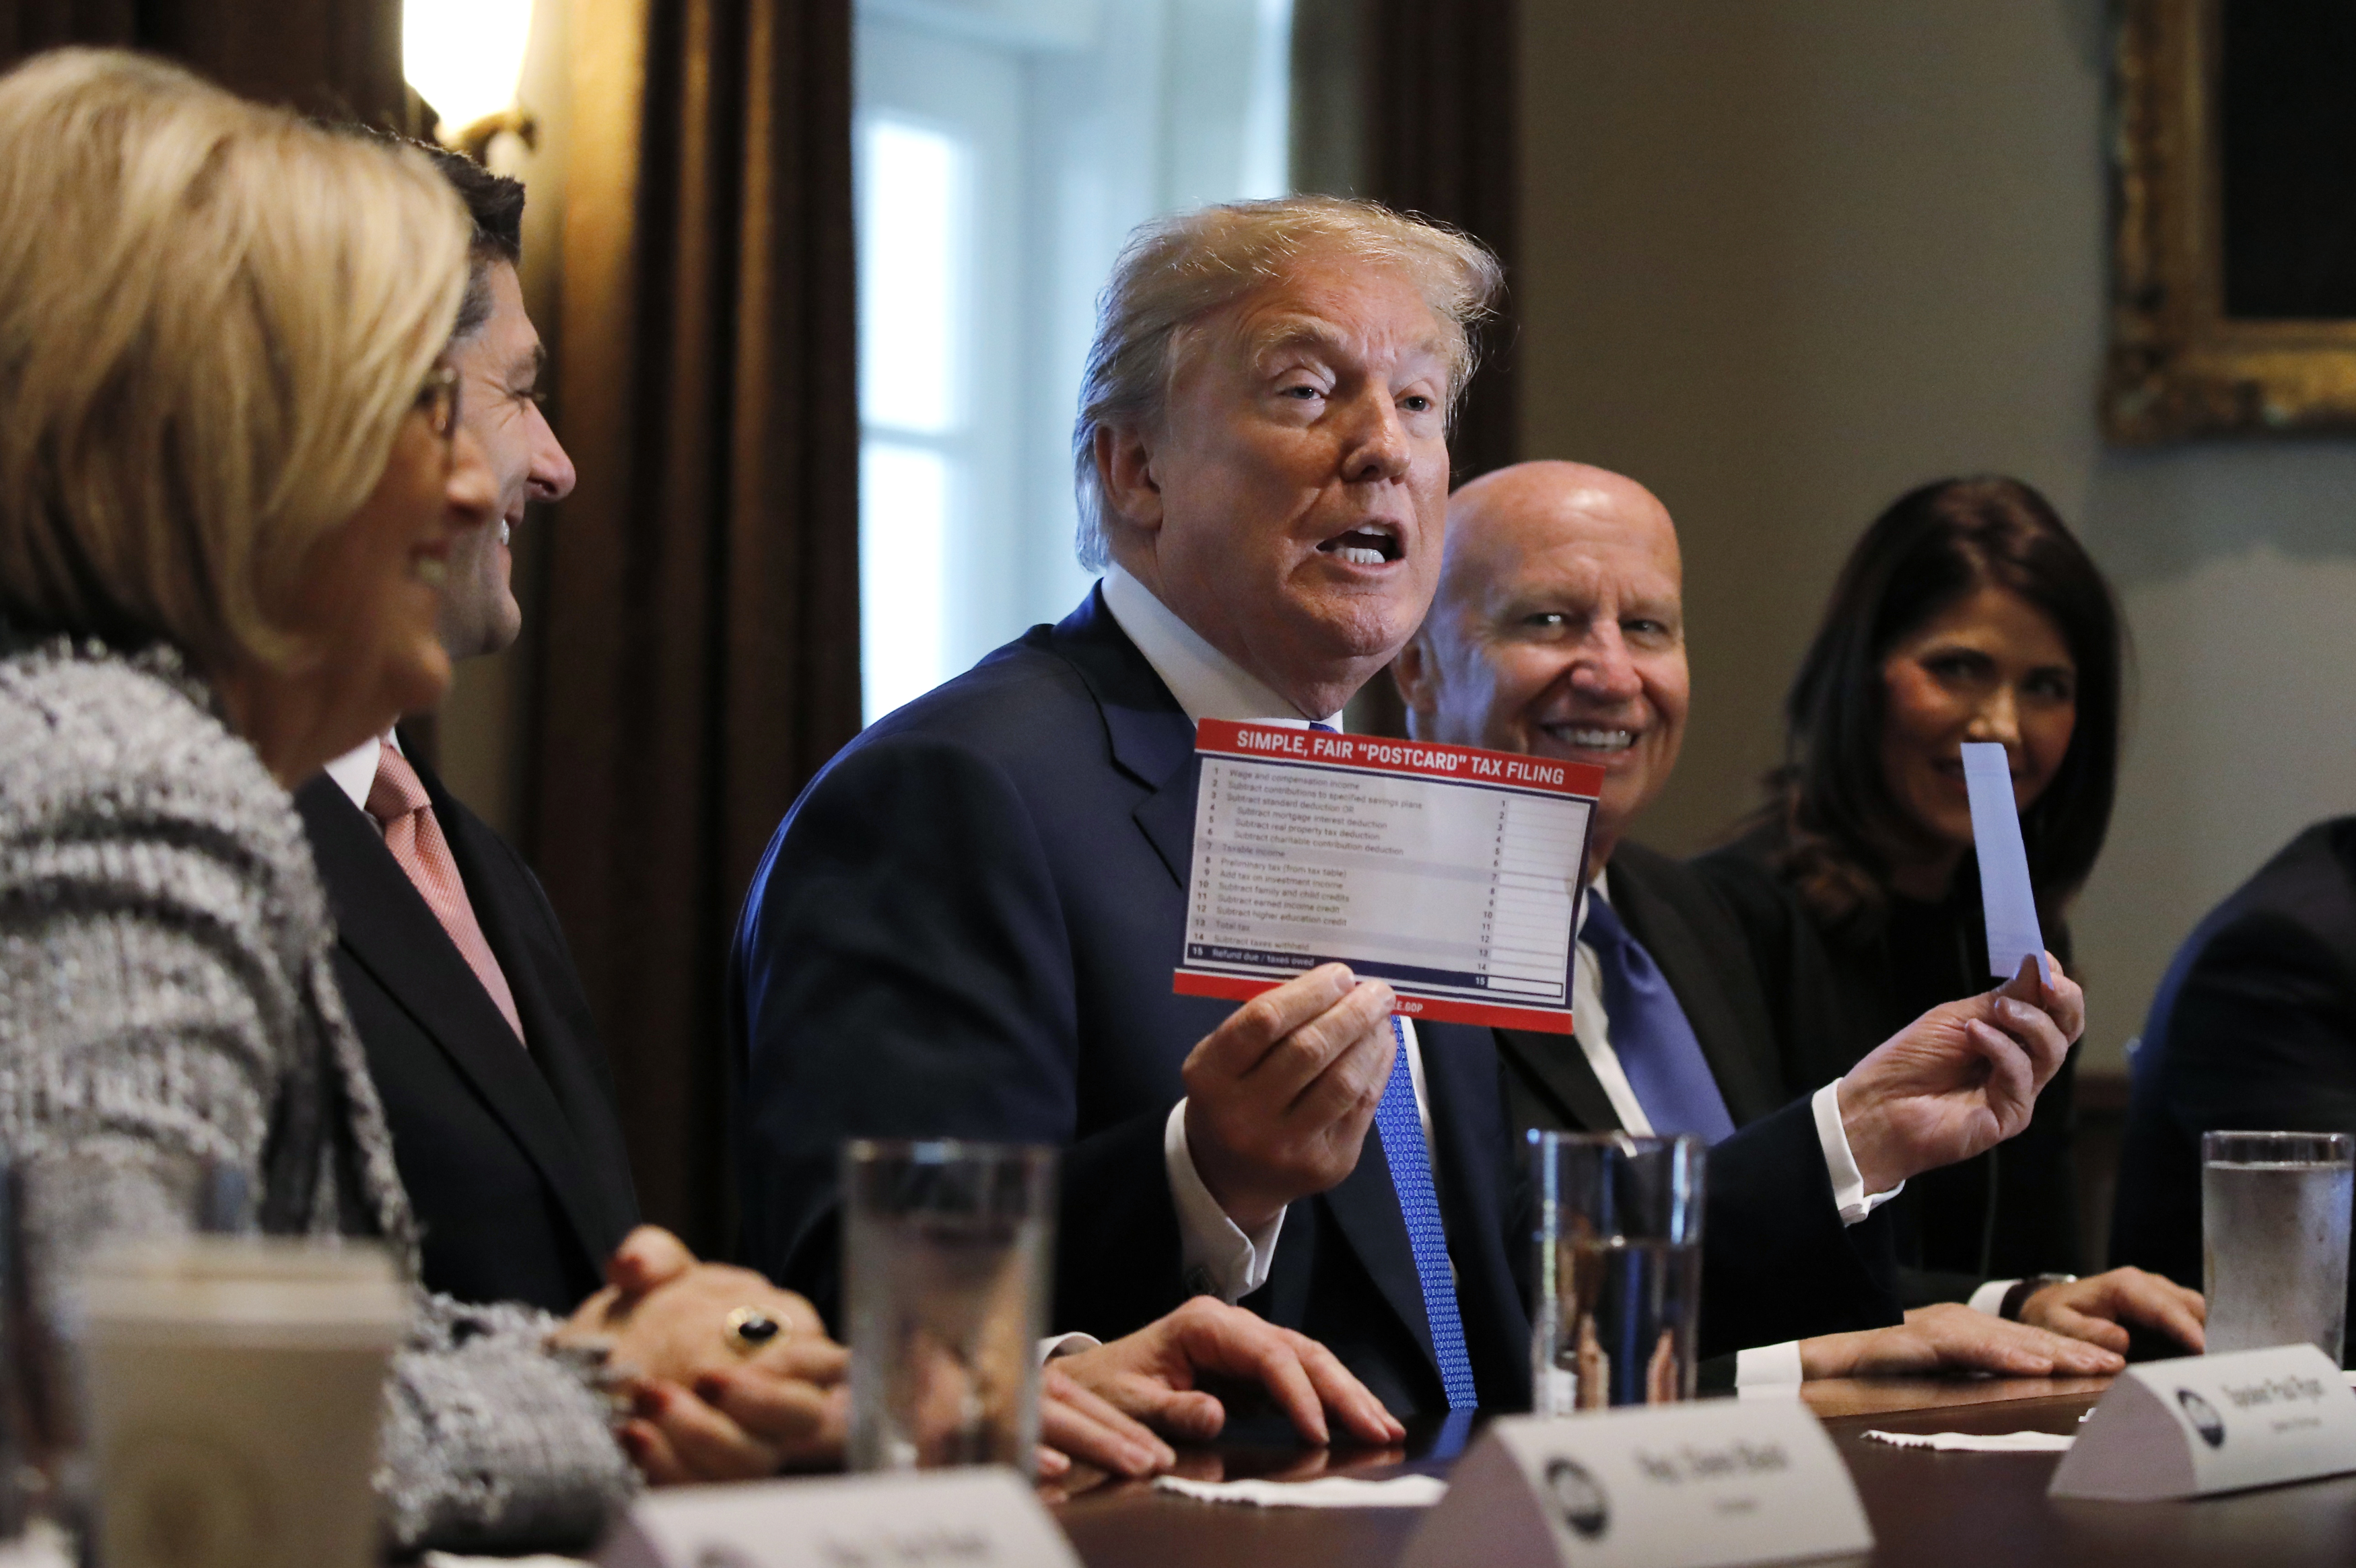 U.S. President Donald Trump promotes a newly unveiled Republican tax plan on Thursday, November 2, 2017.